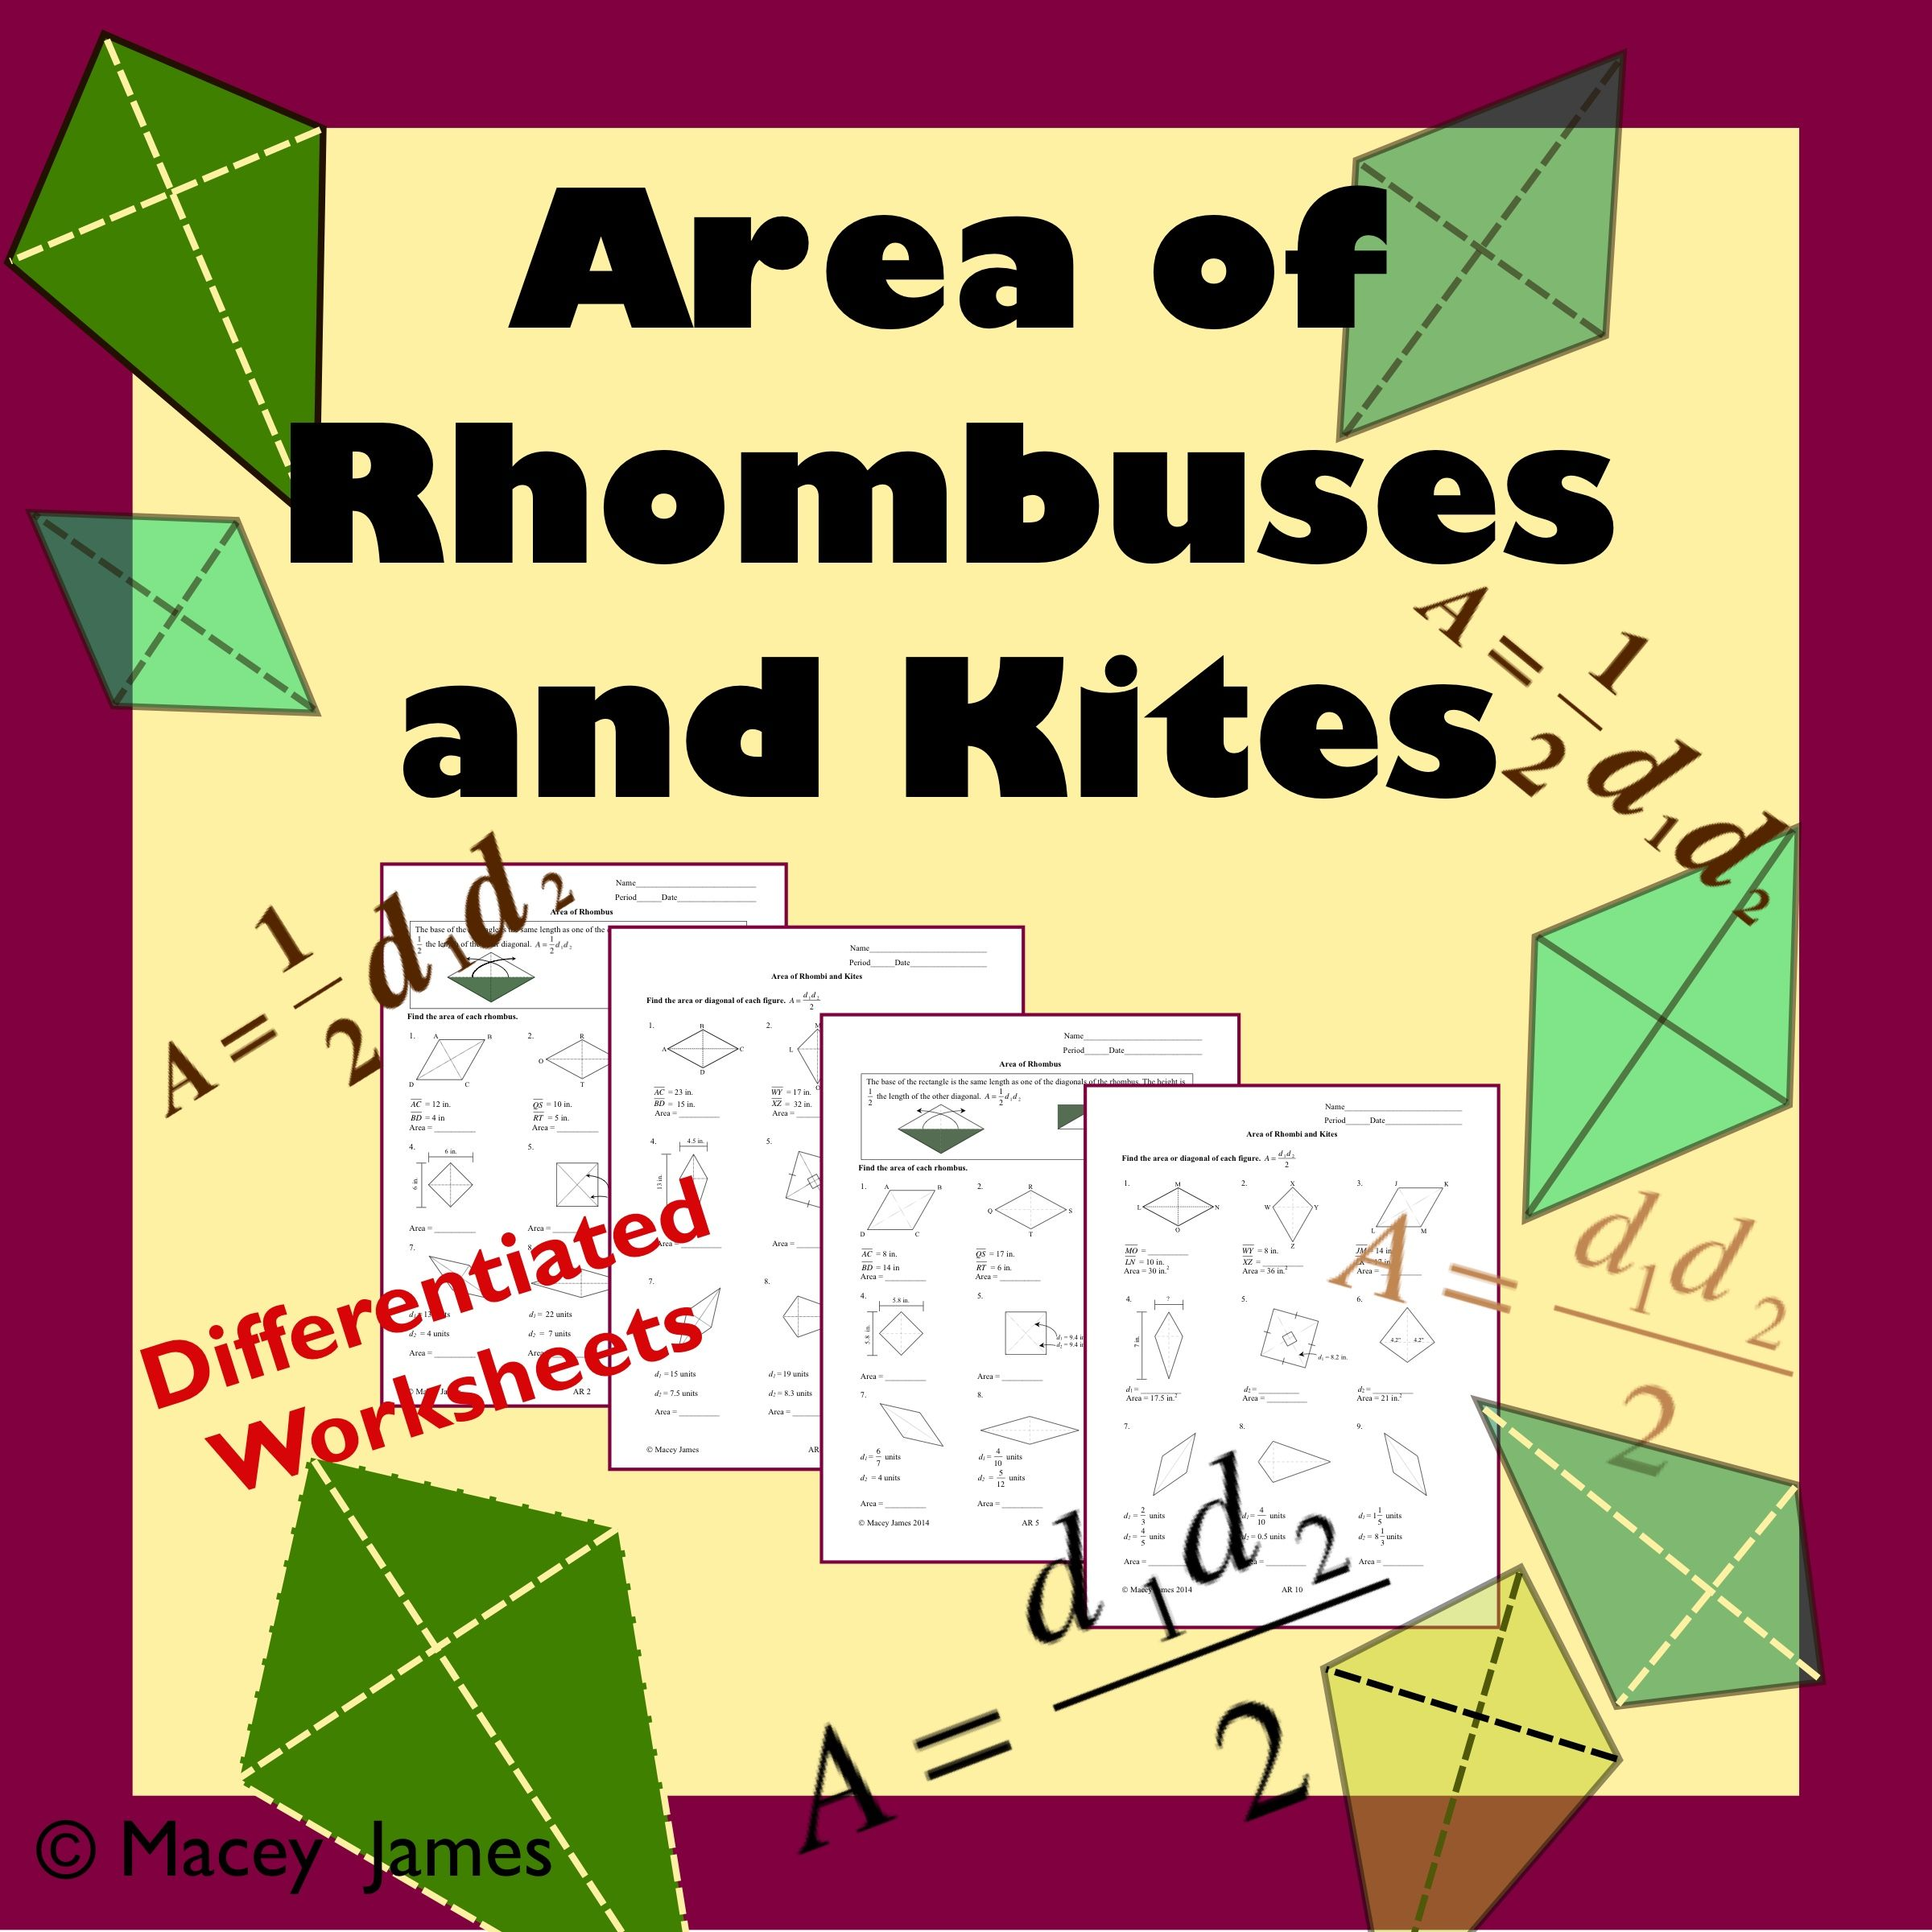 Area Of Rhombus And Kite Middle School Math Resources Rhombus Triangle Worksheet